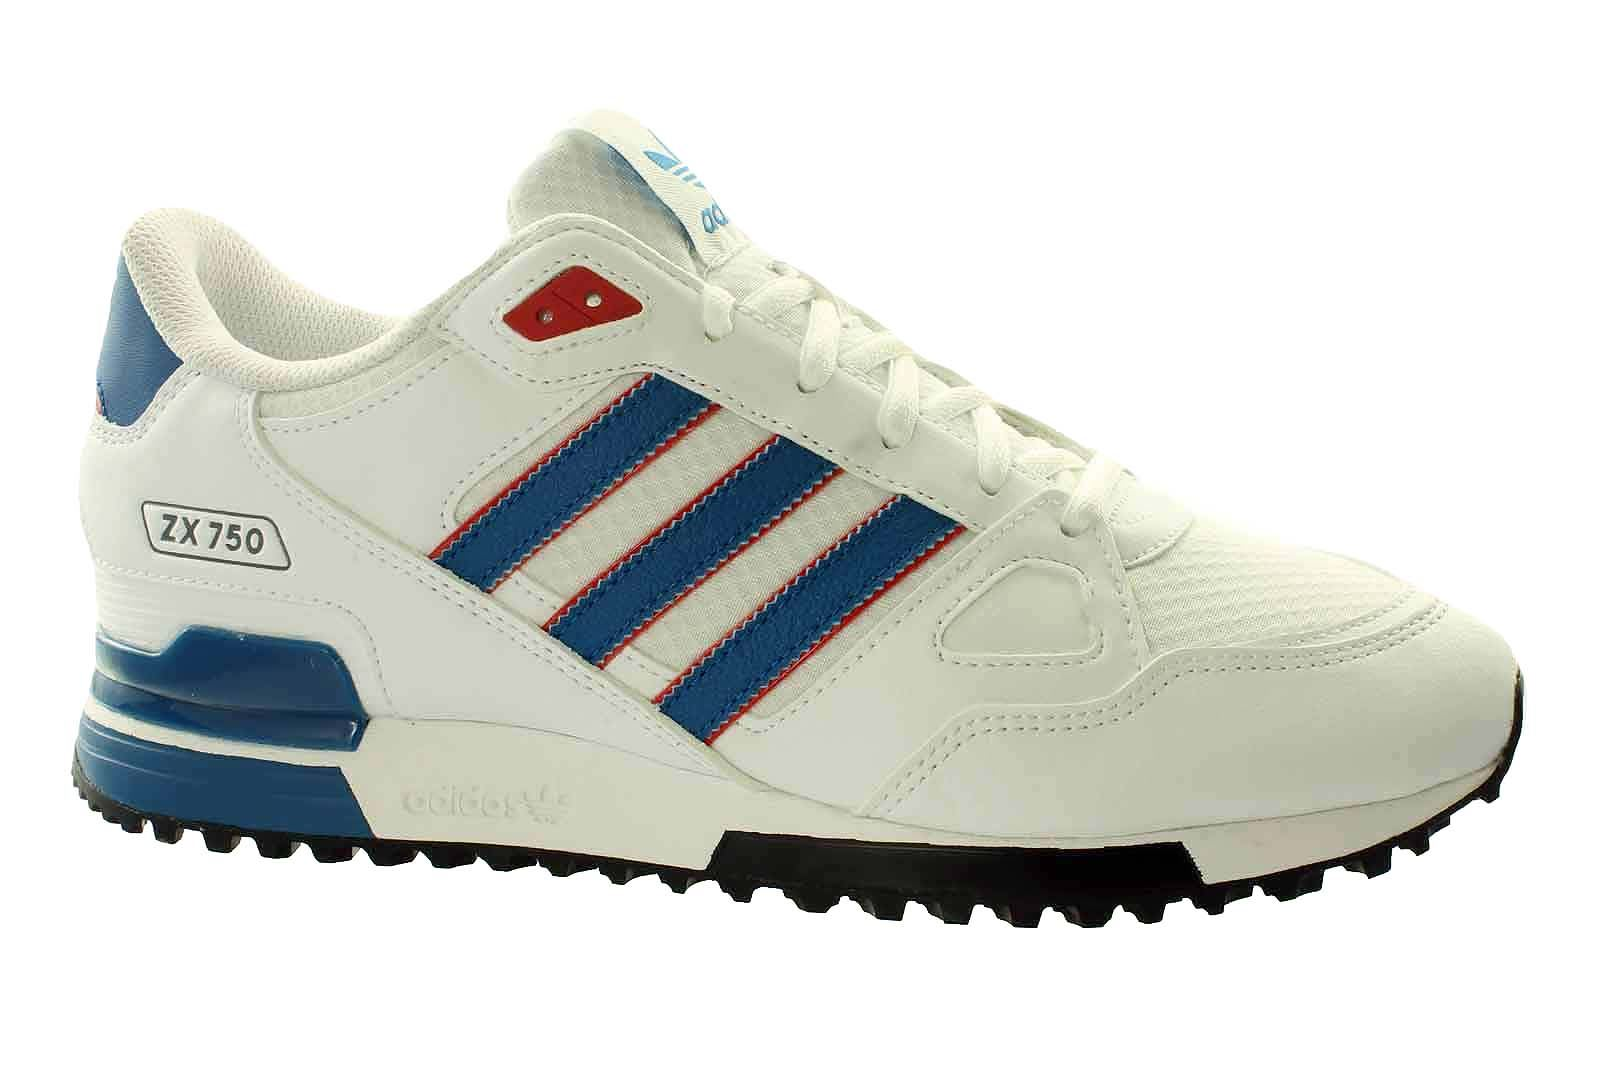 adidas originals zx 750 men's